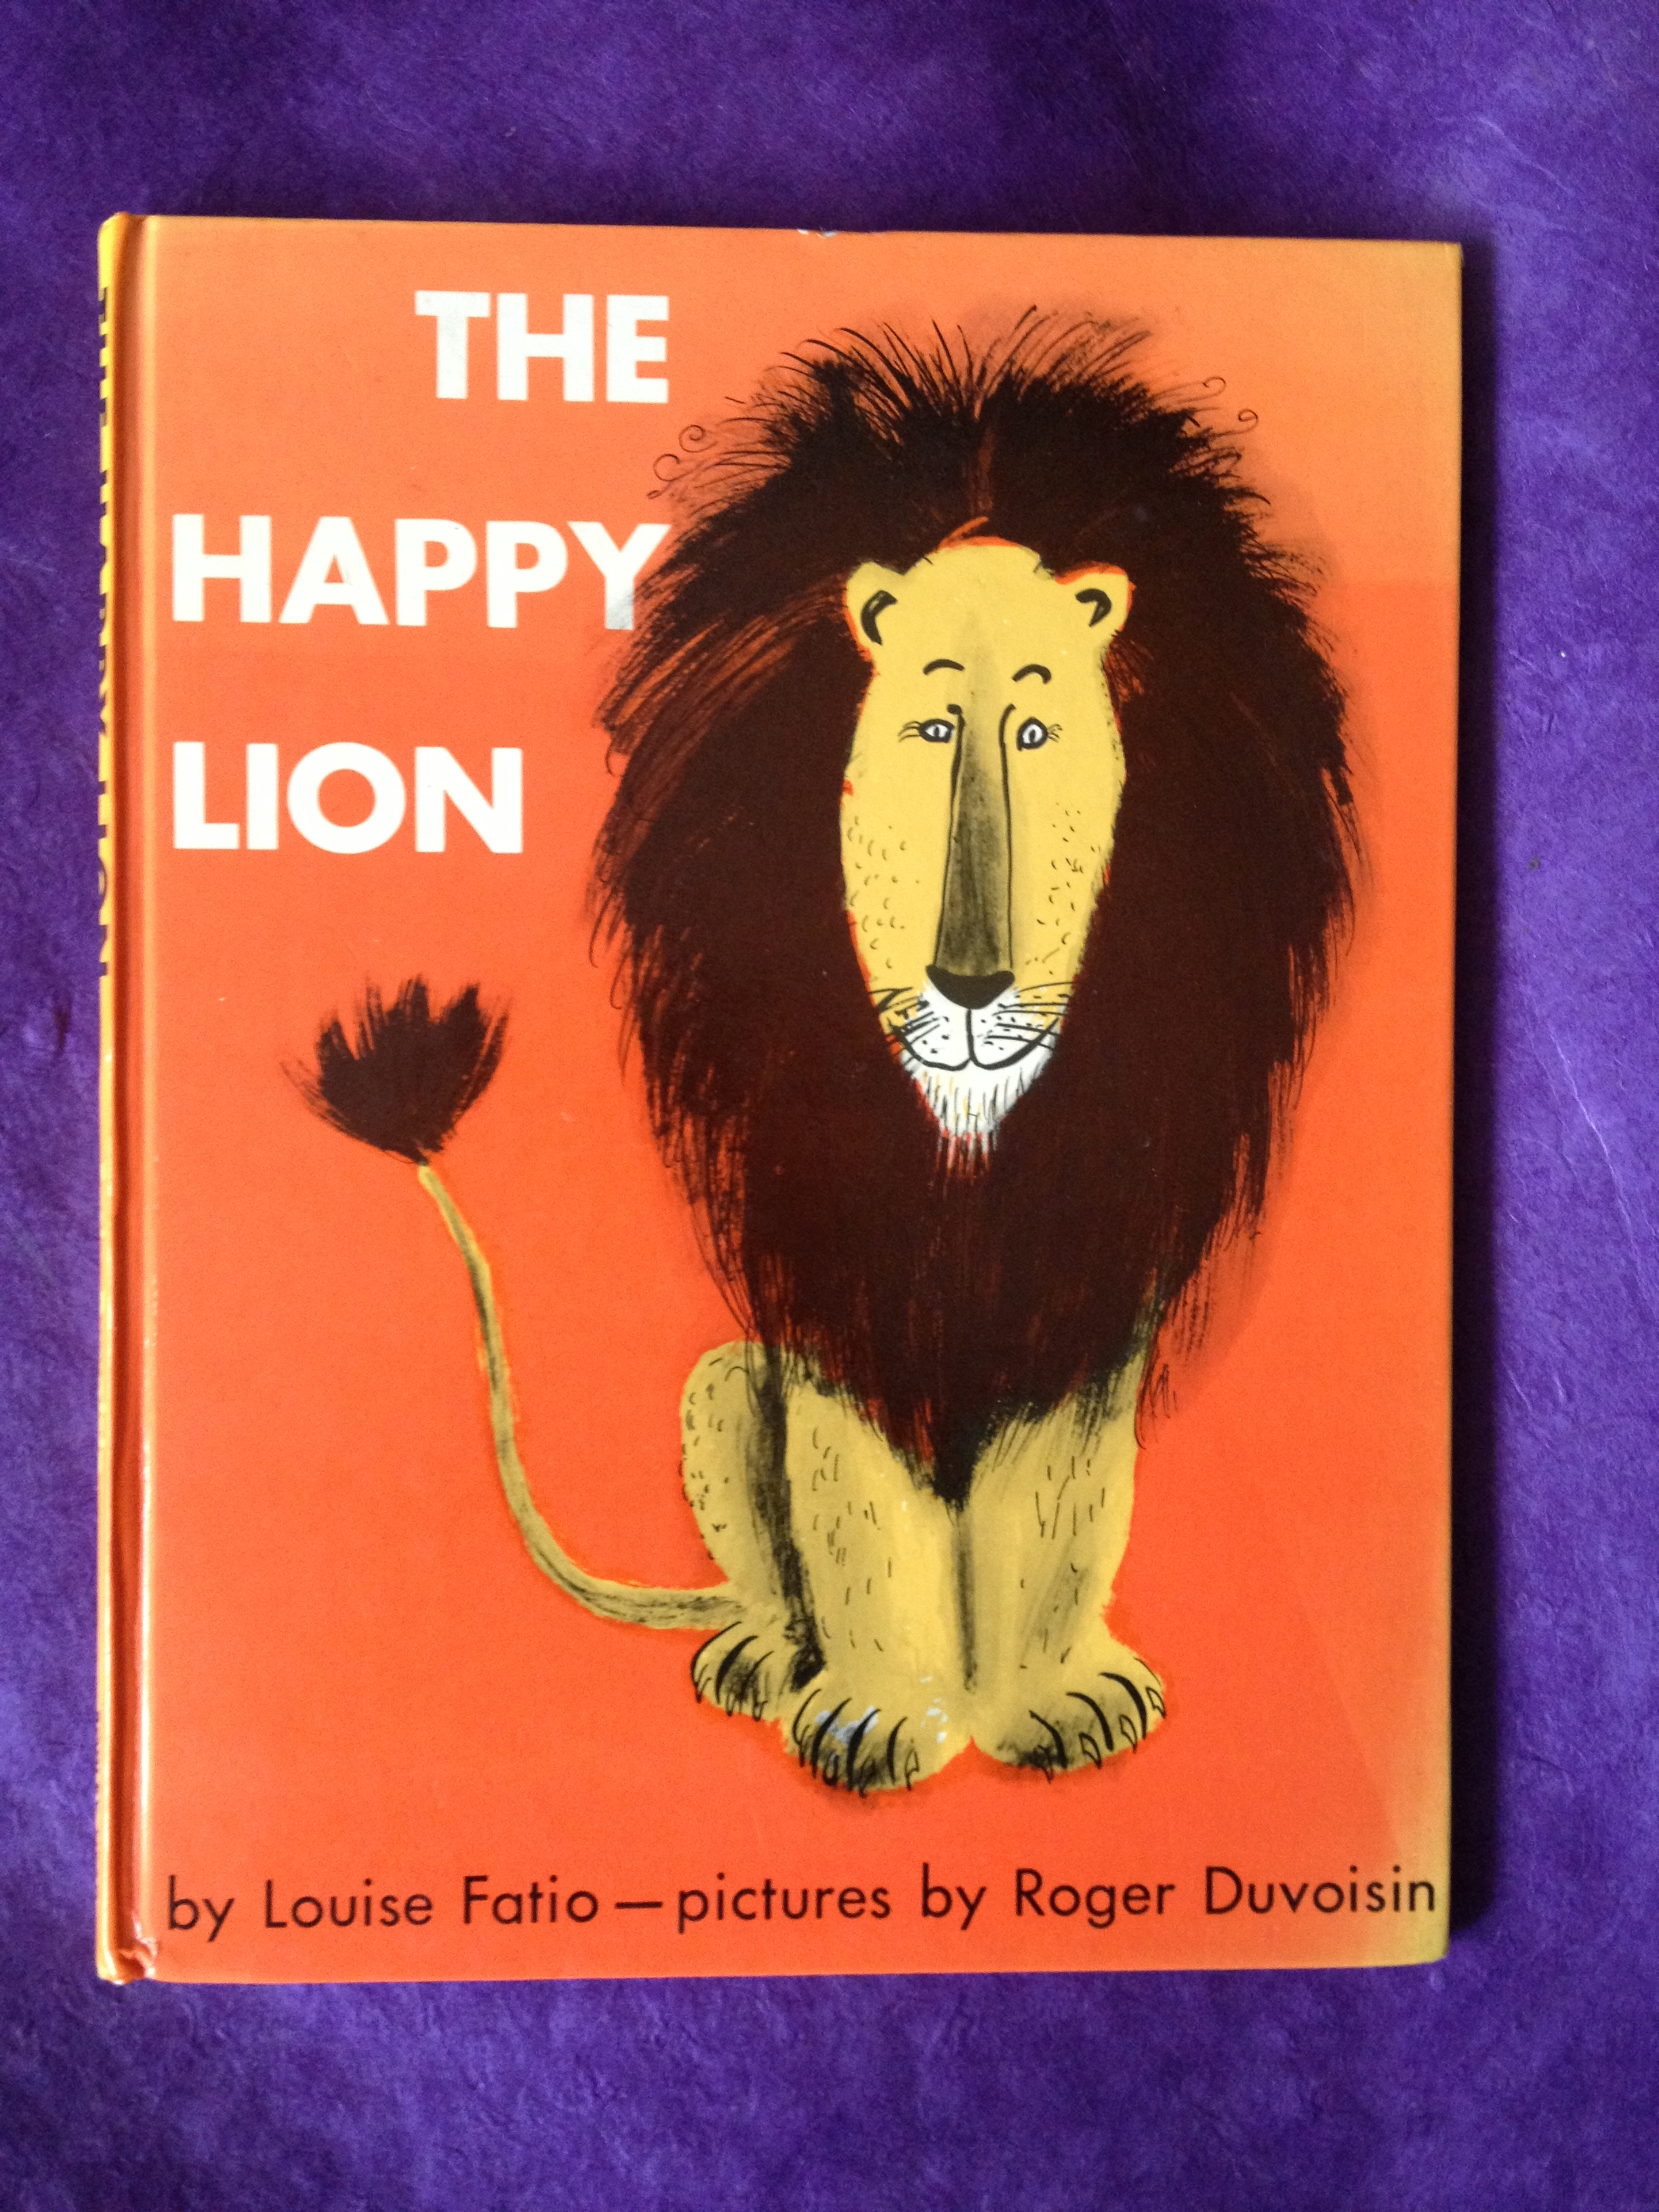 The Happy Lion by Louise Fatio and Roger Duvoisin